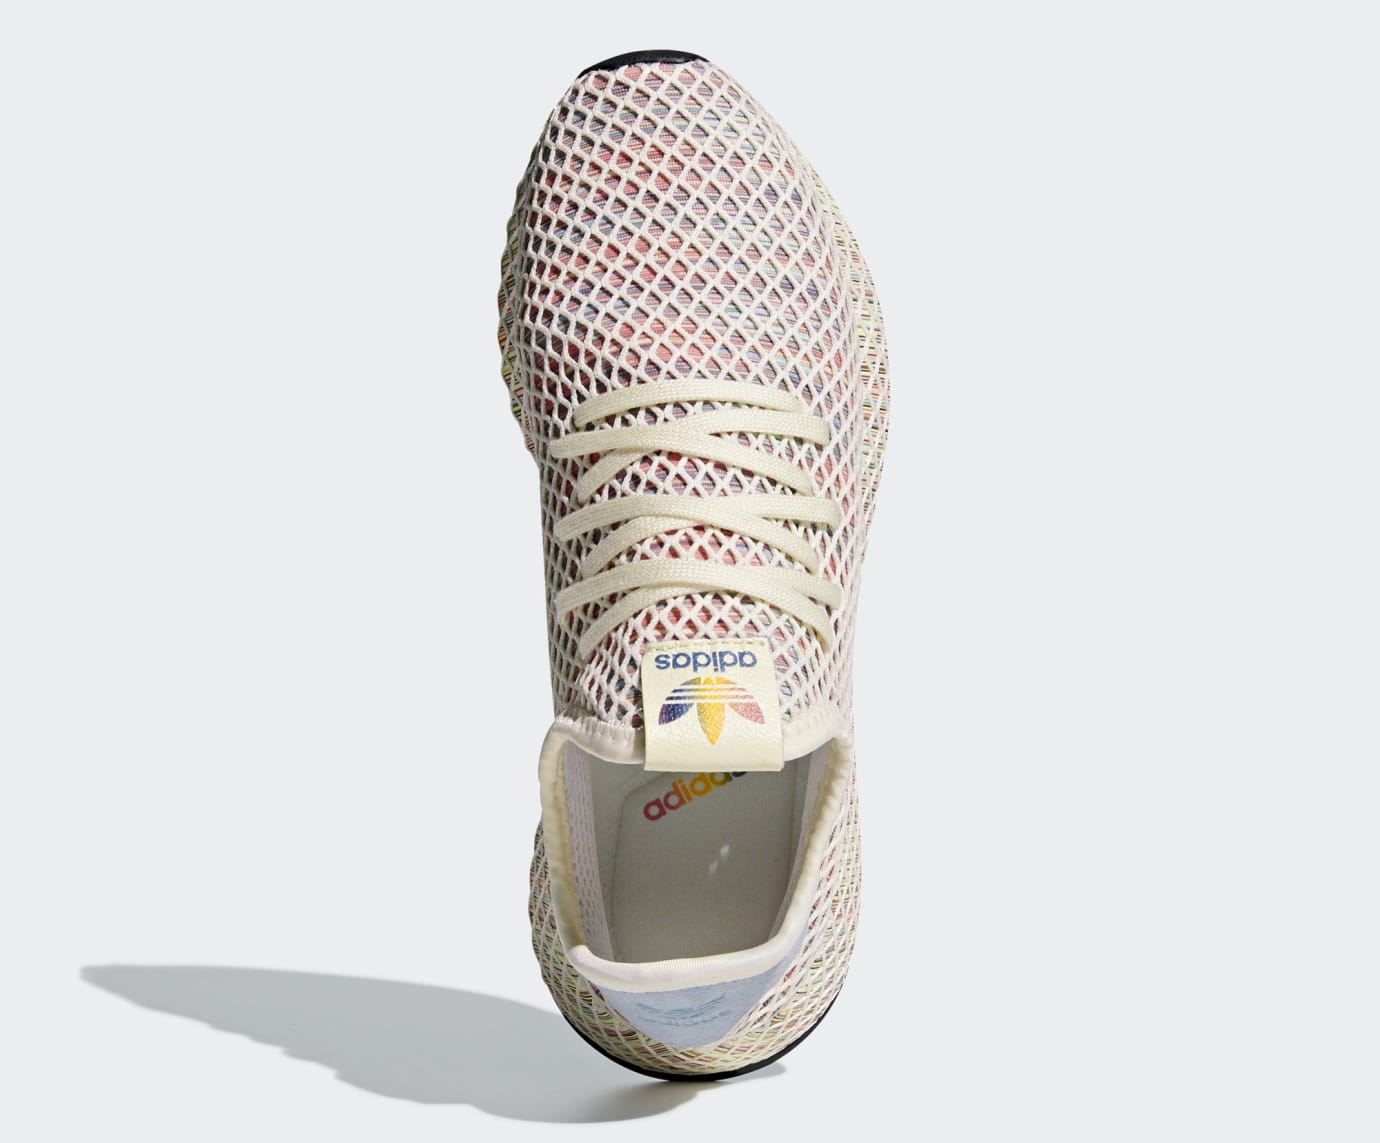 newest 1e280 326a2 Image via Adidas Adidas Deerupt Pride CM8474 (Top)